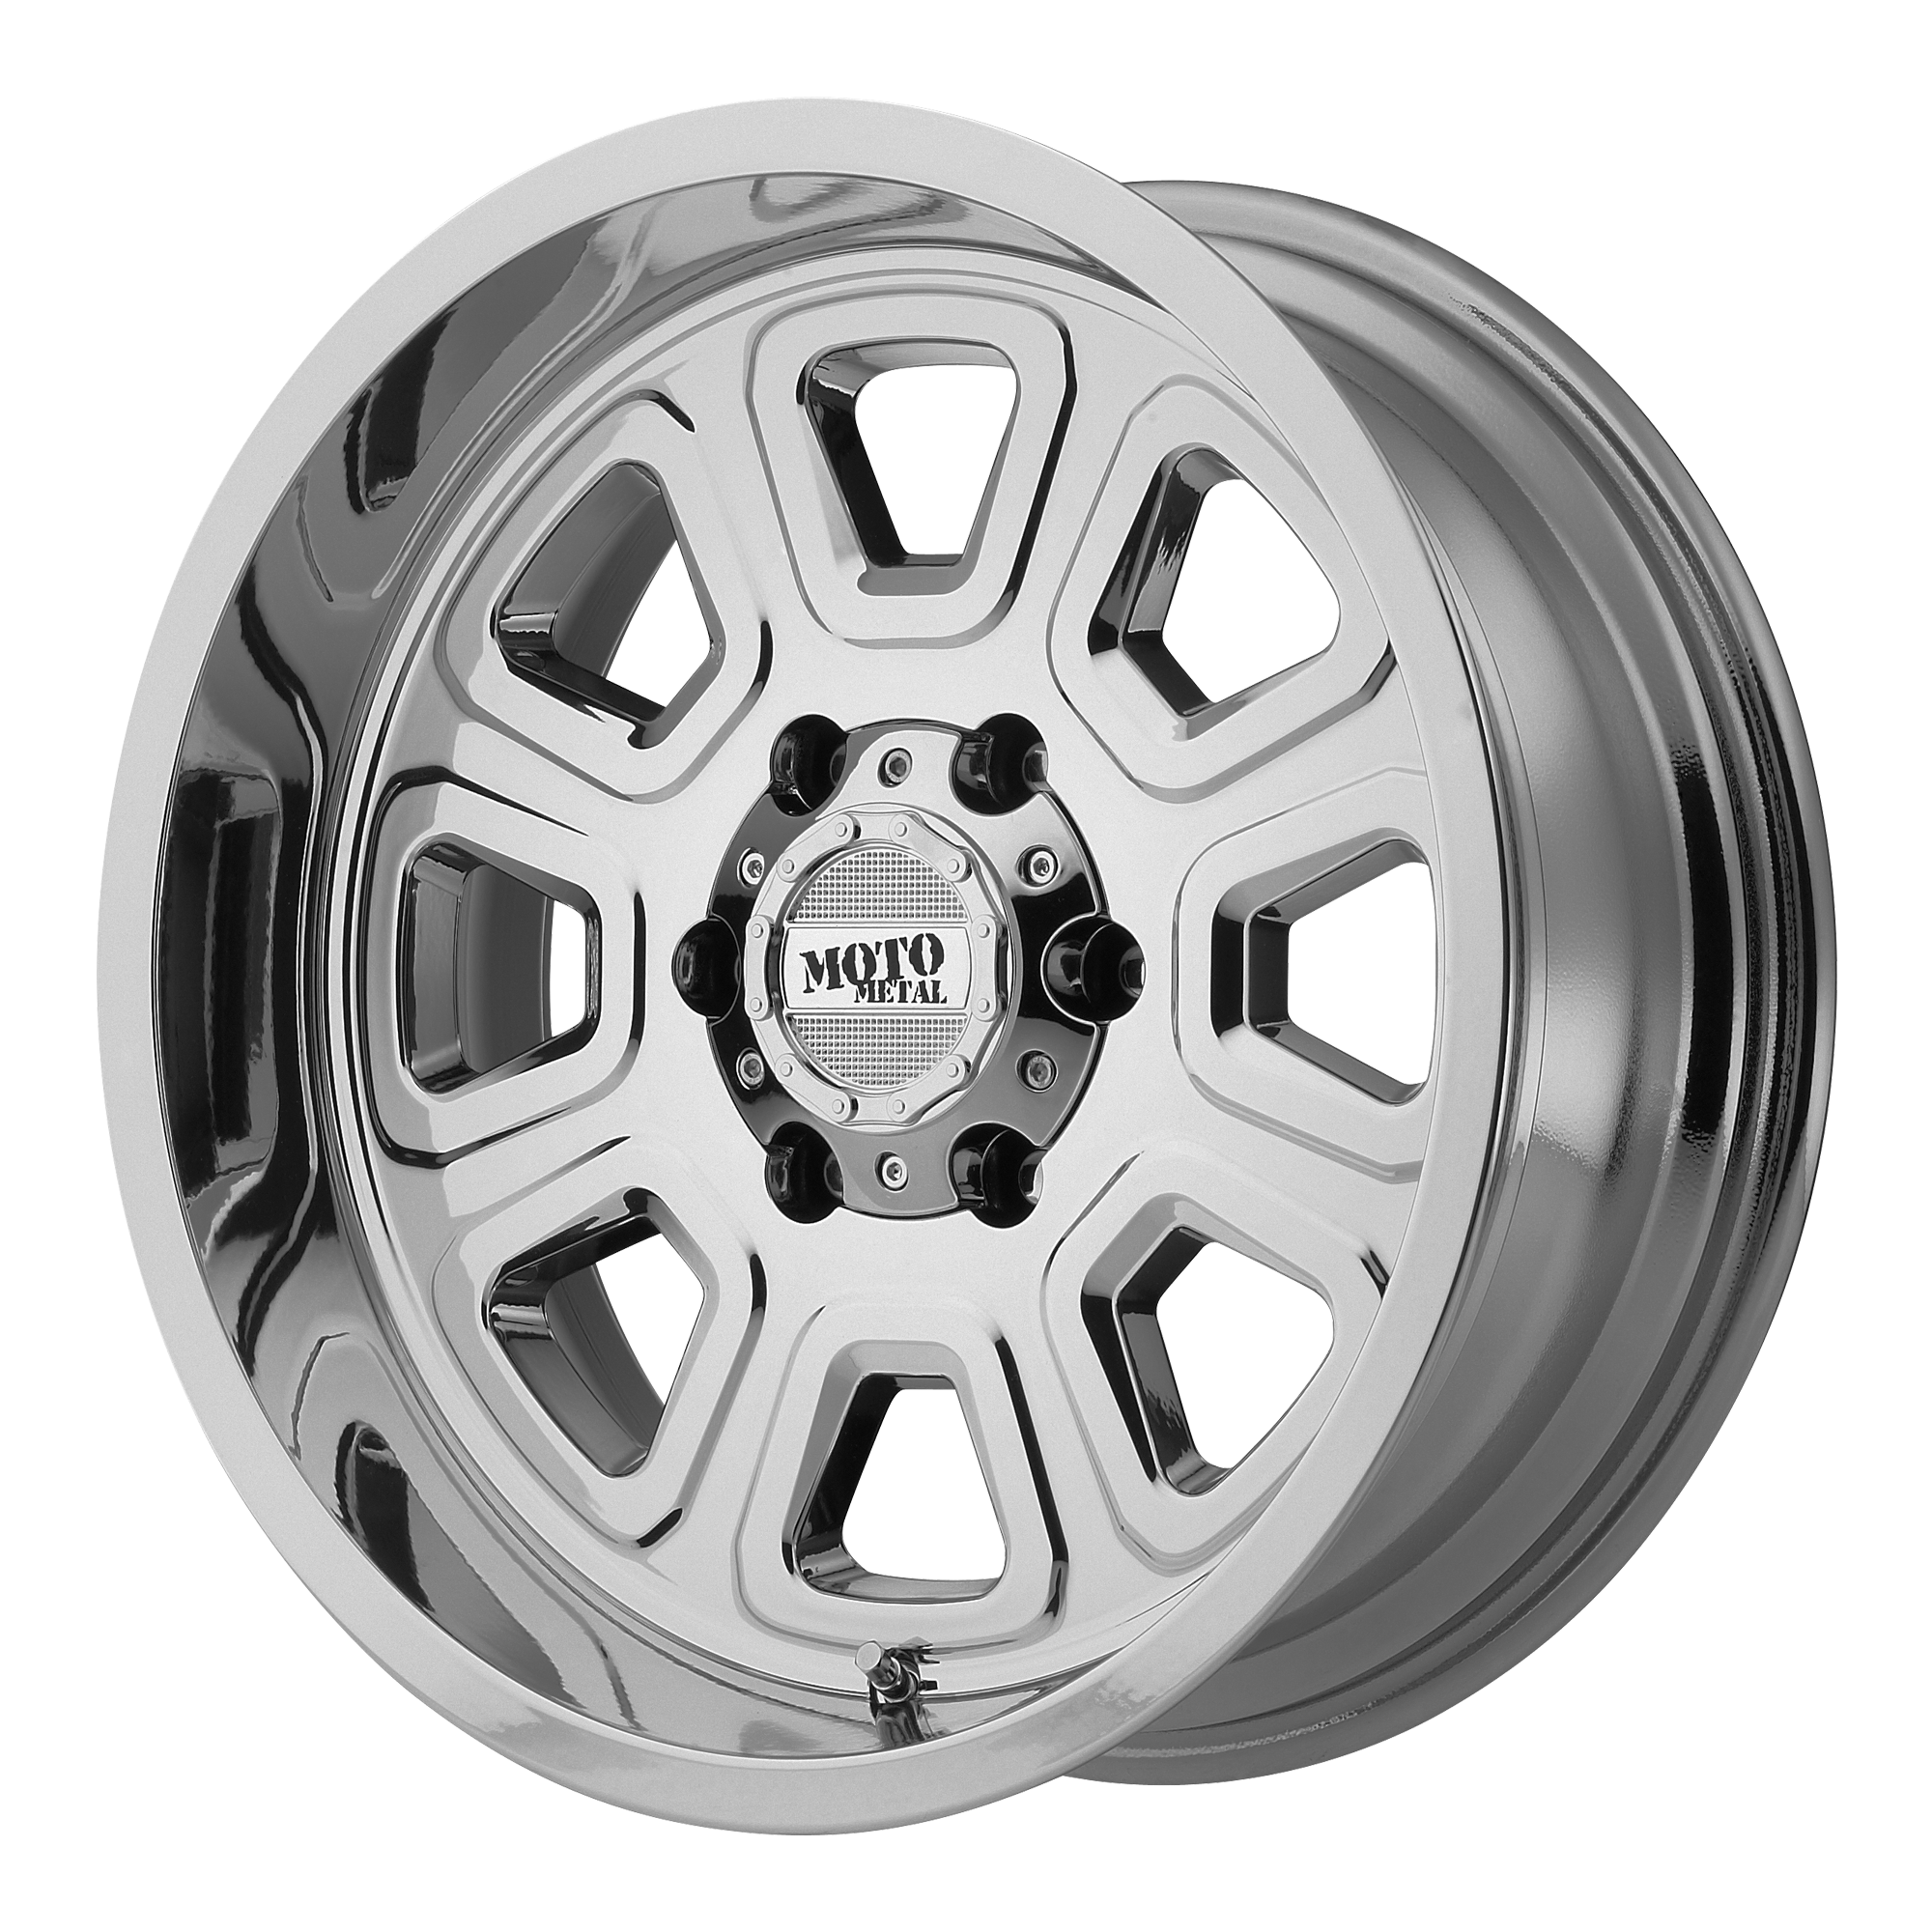 Moto Metal Offroad Wheels MO972 PVD